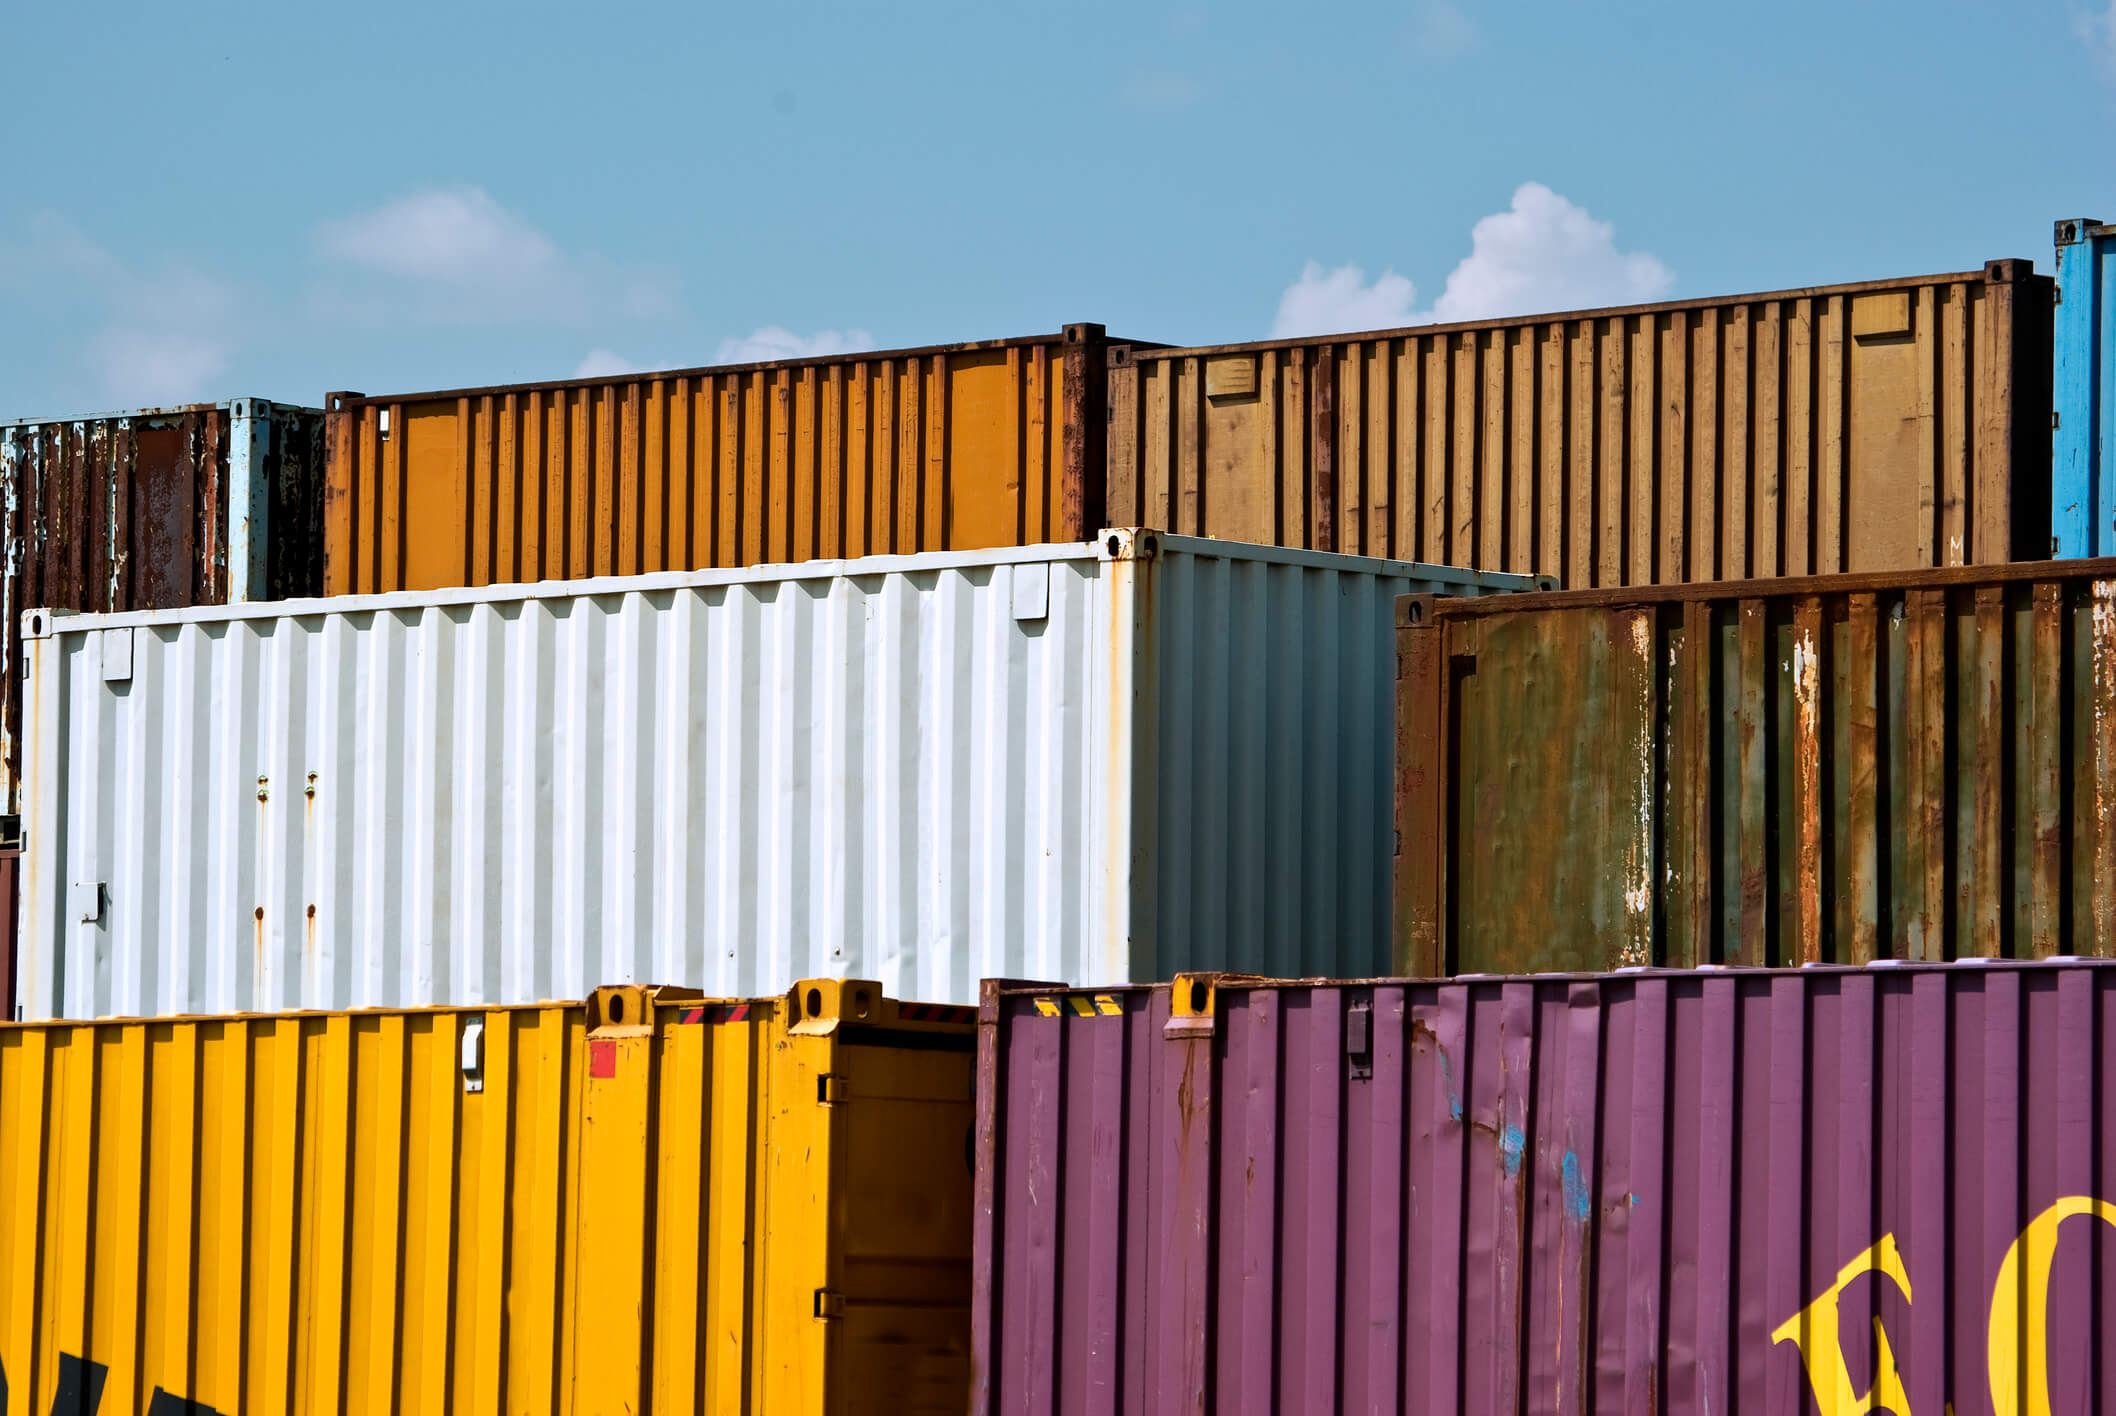 Freight containers stacked in various colors for shipping